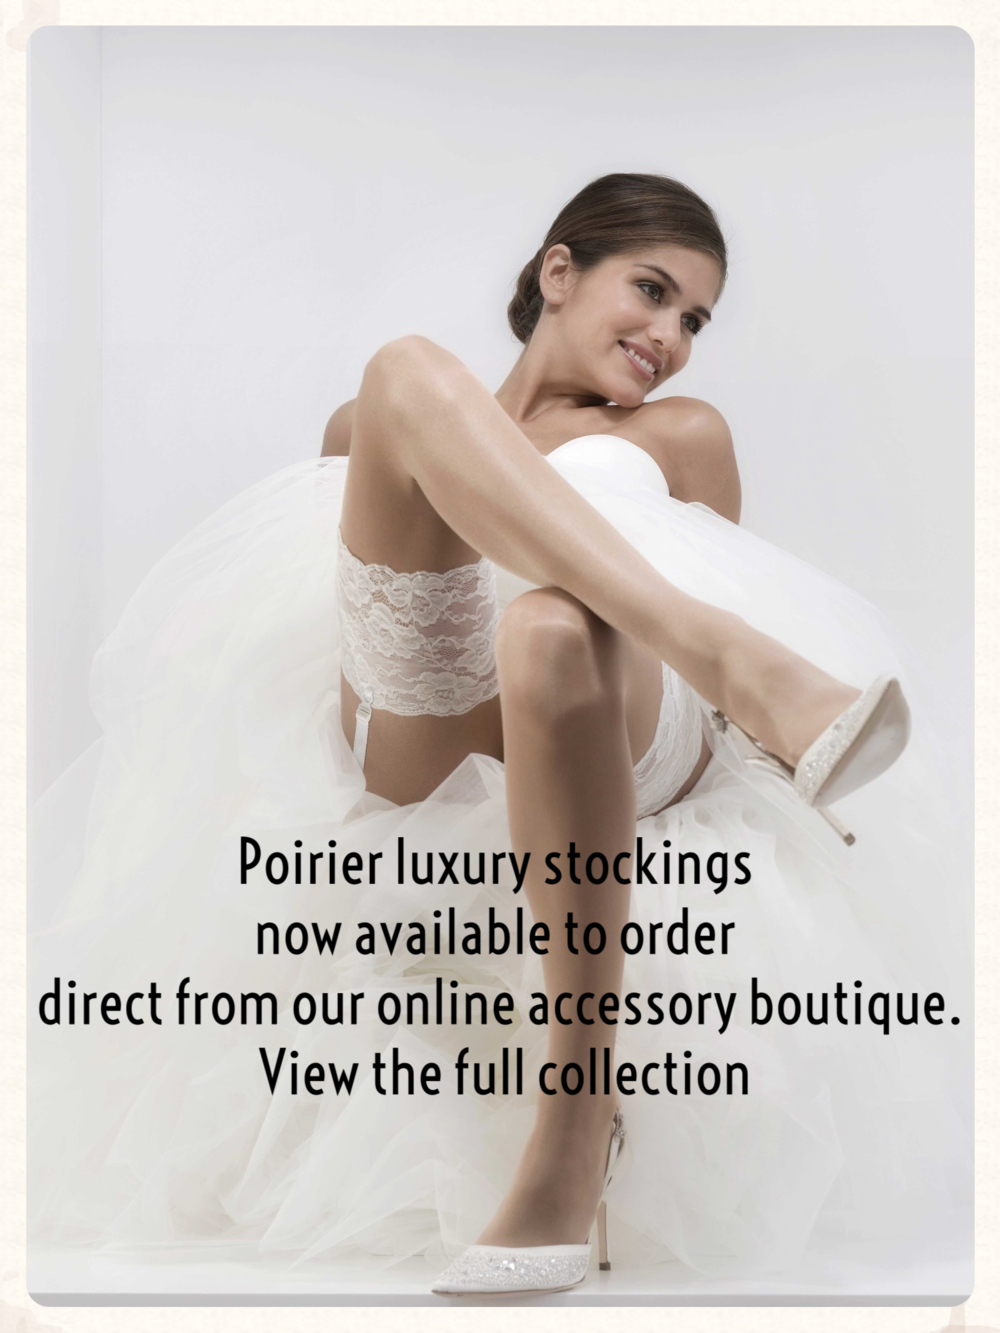 Poirier luxury stockings now available to order direct from our online accessory boutique. View the full collection